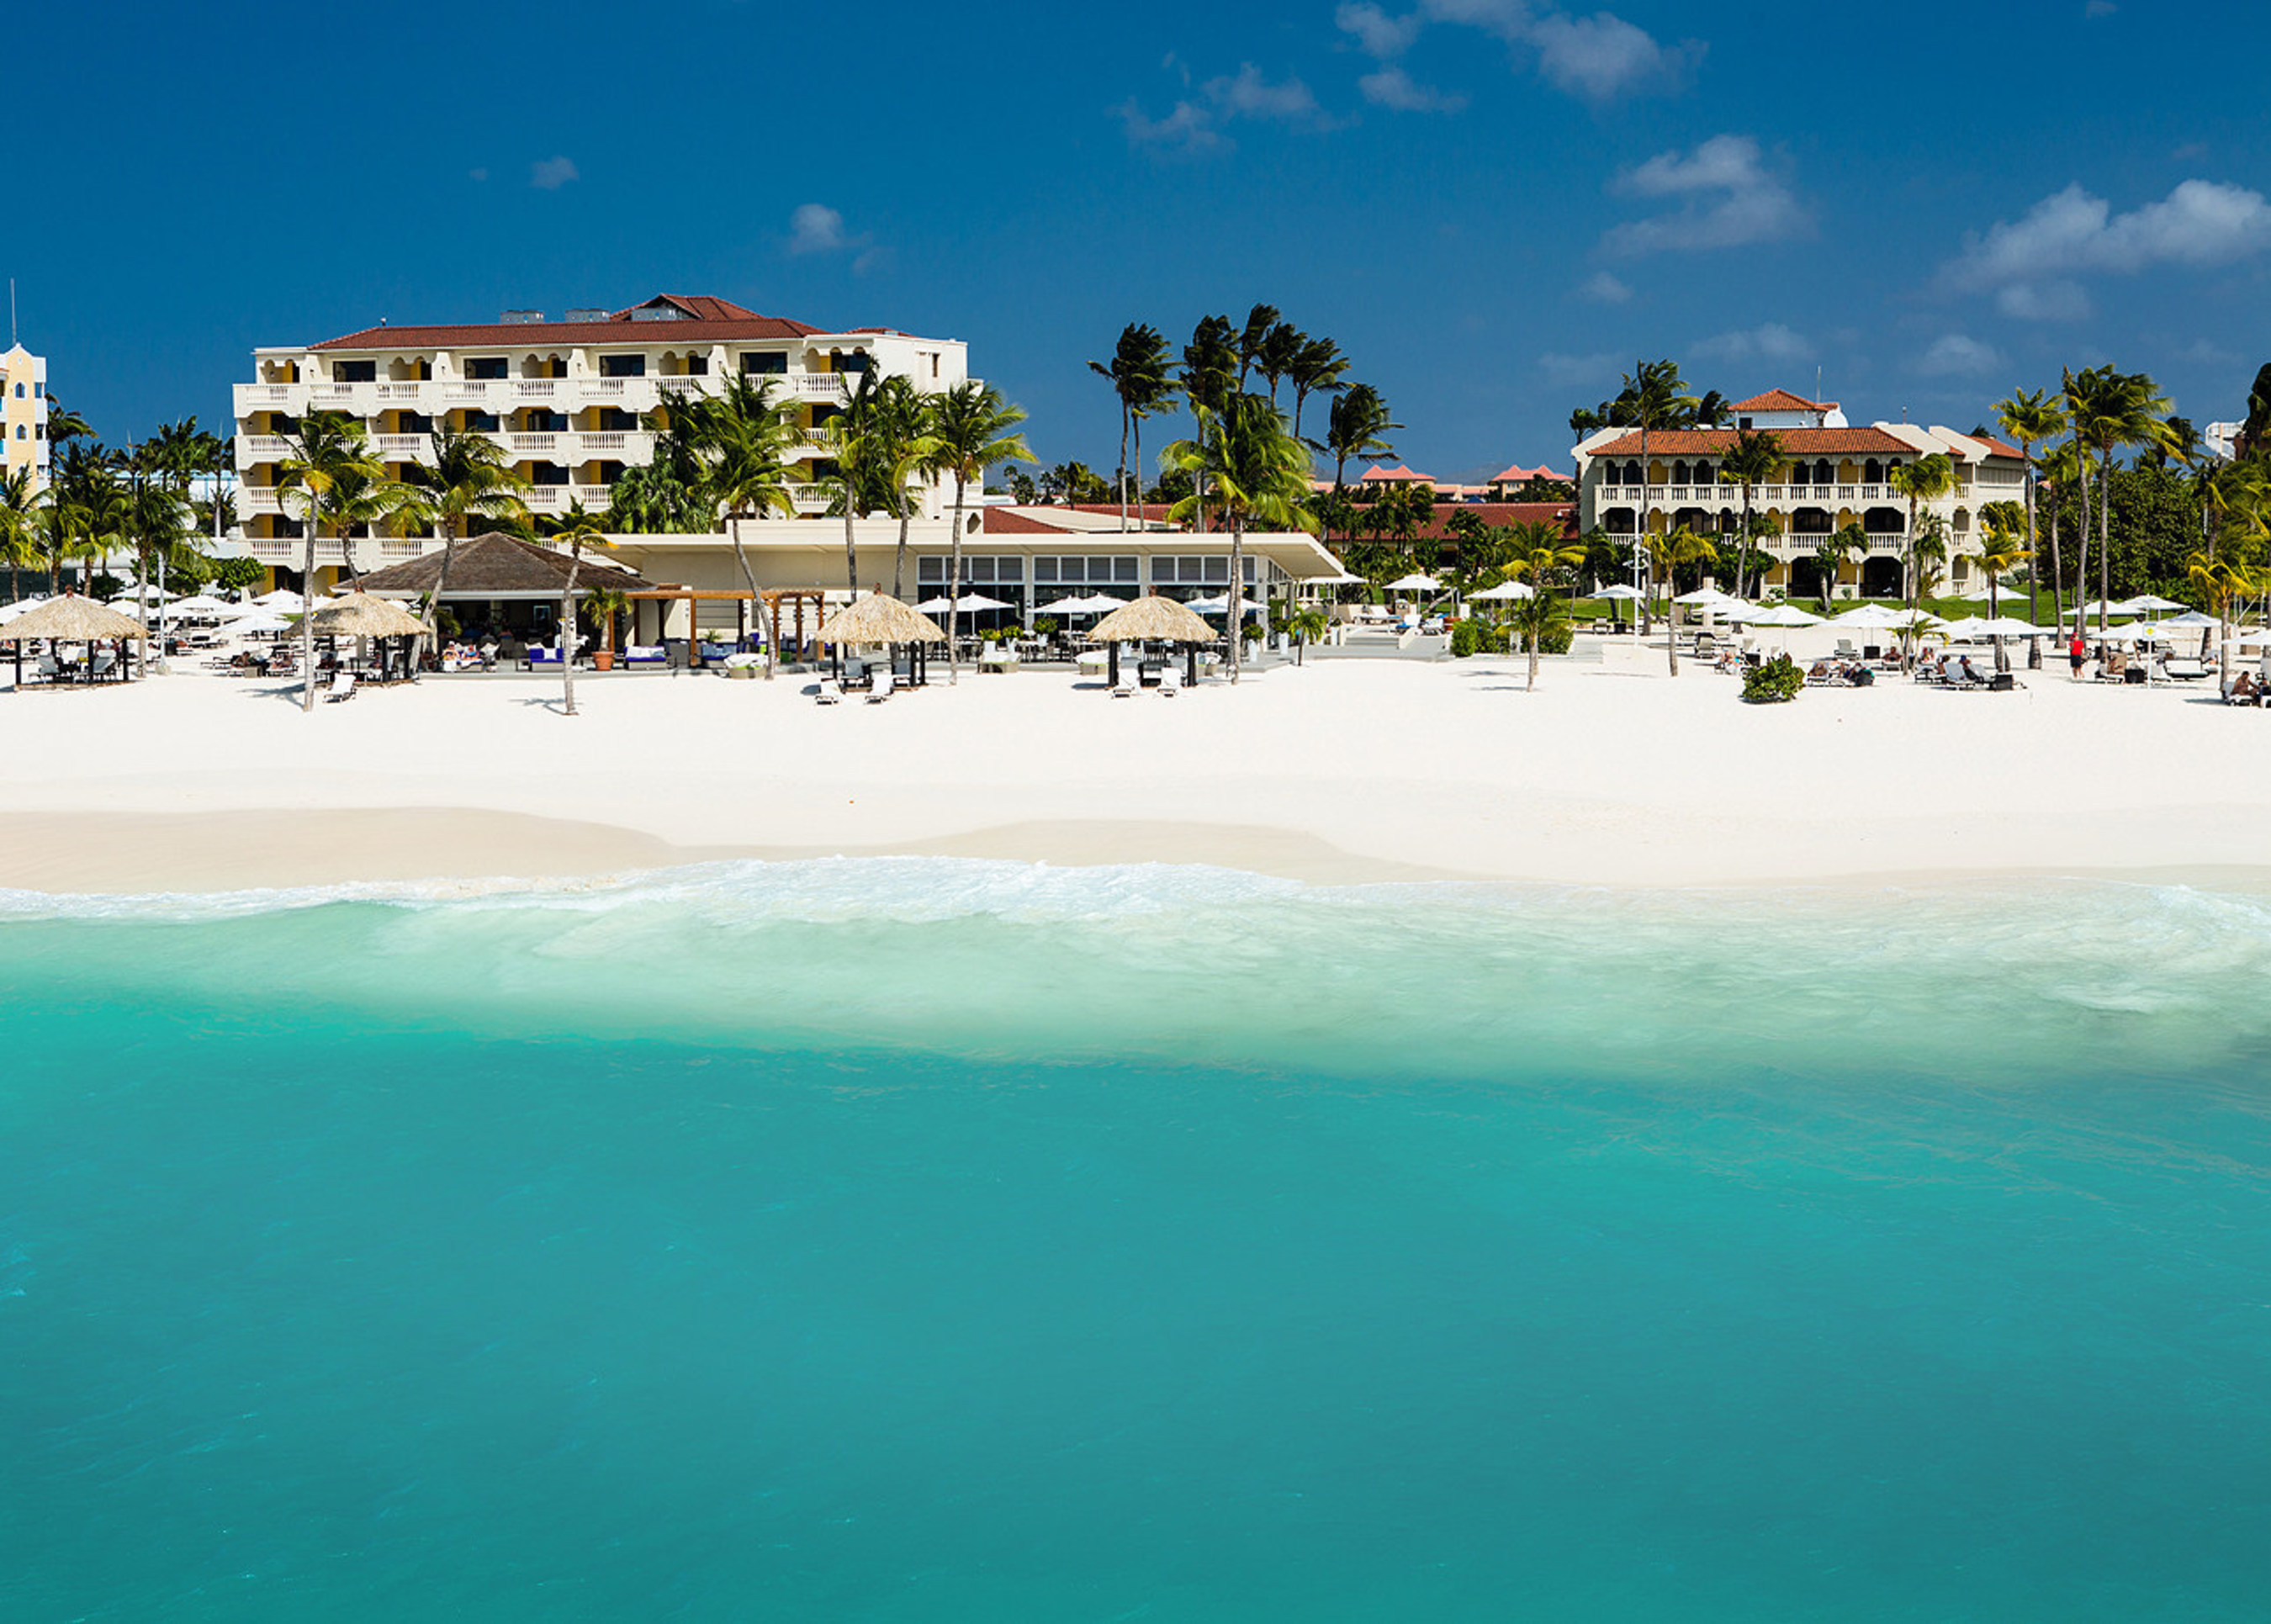 Aruba's premier adults-only boutique resort, is serene and peaceful, perfect for couples focusing on romance, relaxation and wellness.